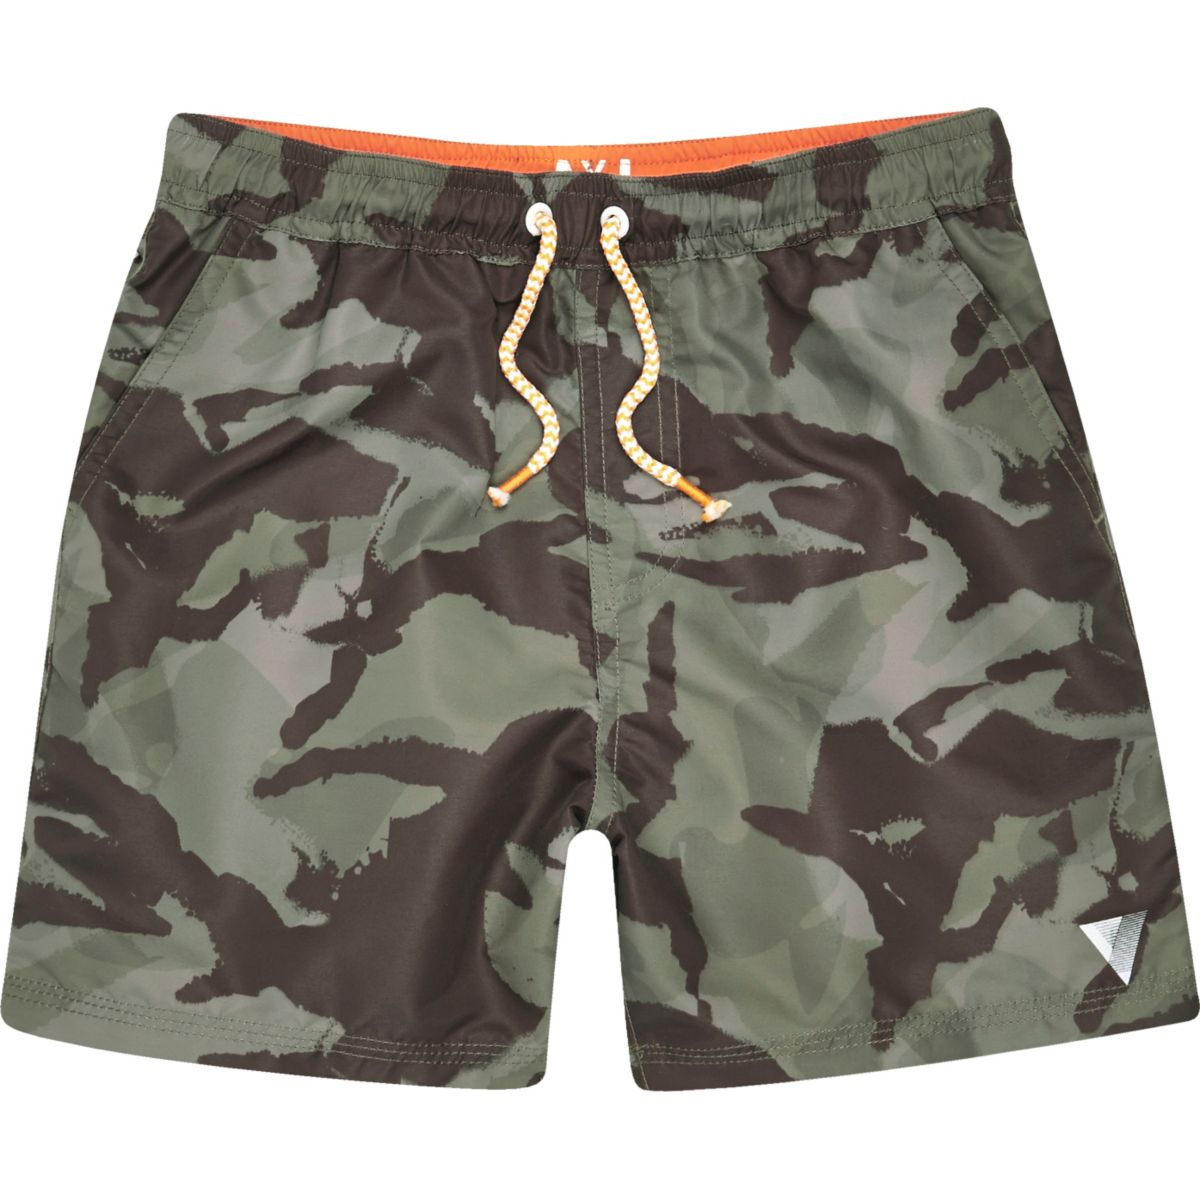 Give his swim selection a boost with the camo grid pattern of these summer essentials. Designed with a full elastic waistband and functional drawstring closure, these swim trunks feature a mesh lining that promises comfort and a flap pocket that promotes functionality.